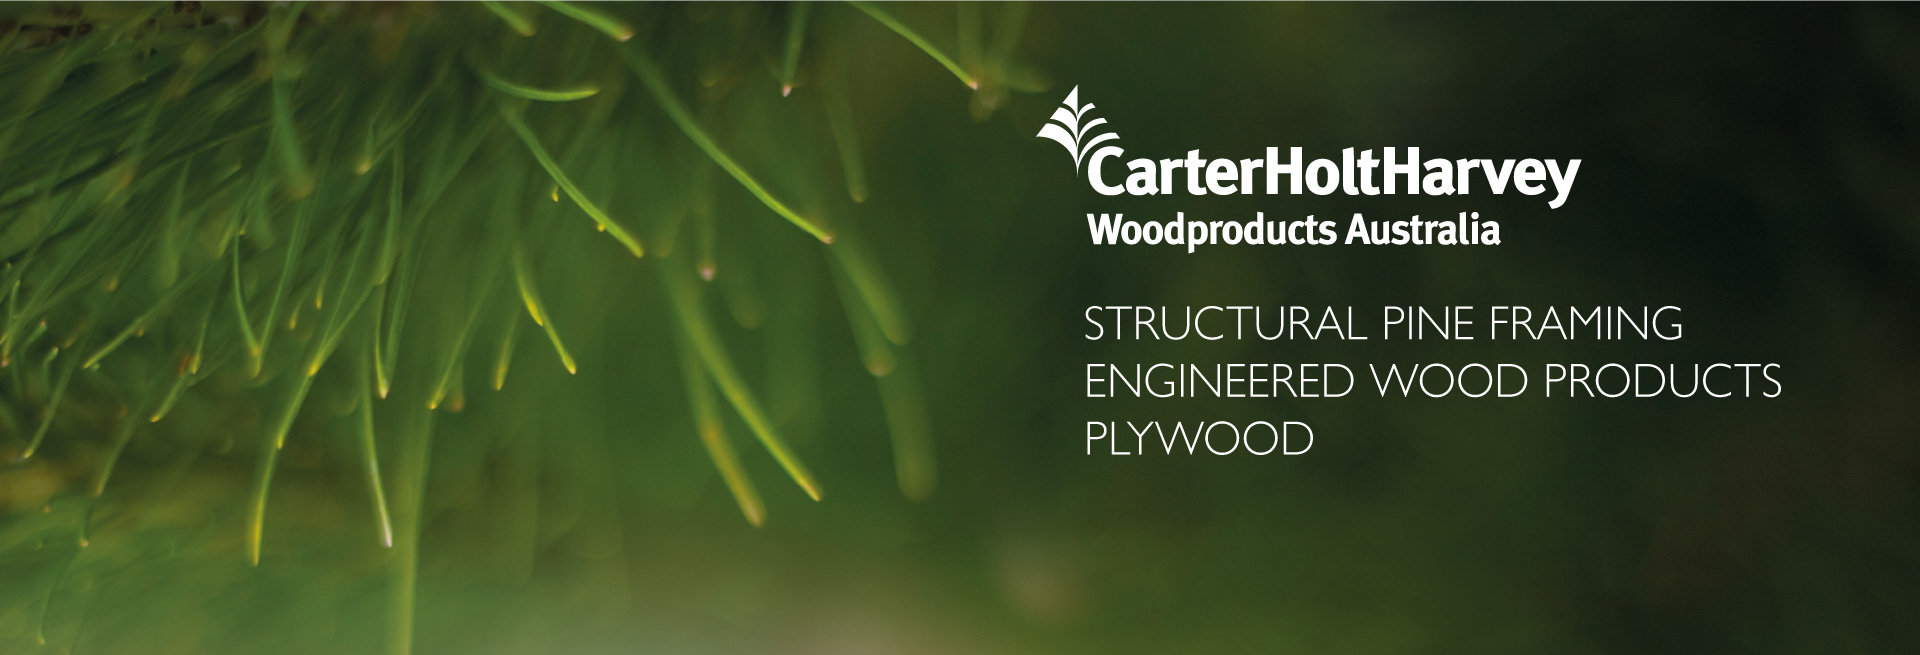 Carter Holt Harvey Wood Products